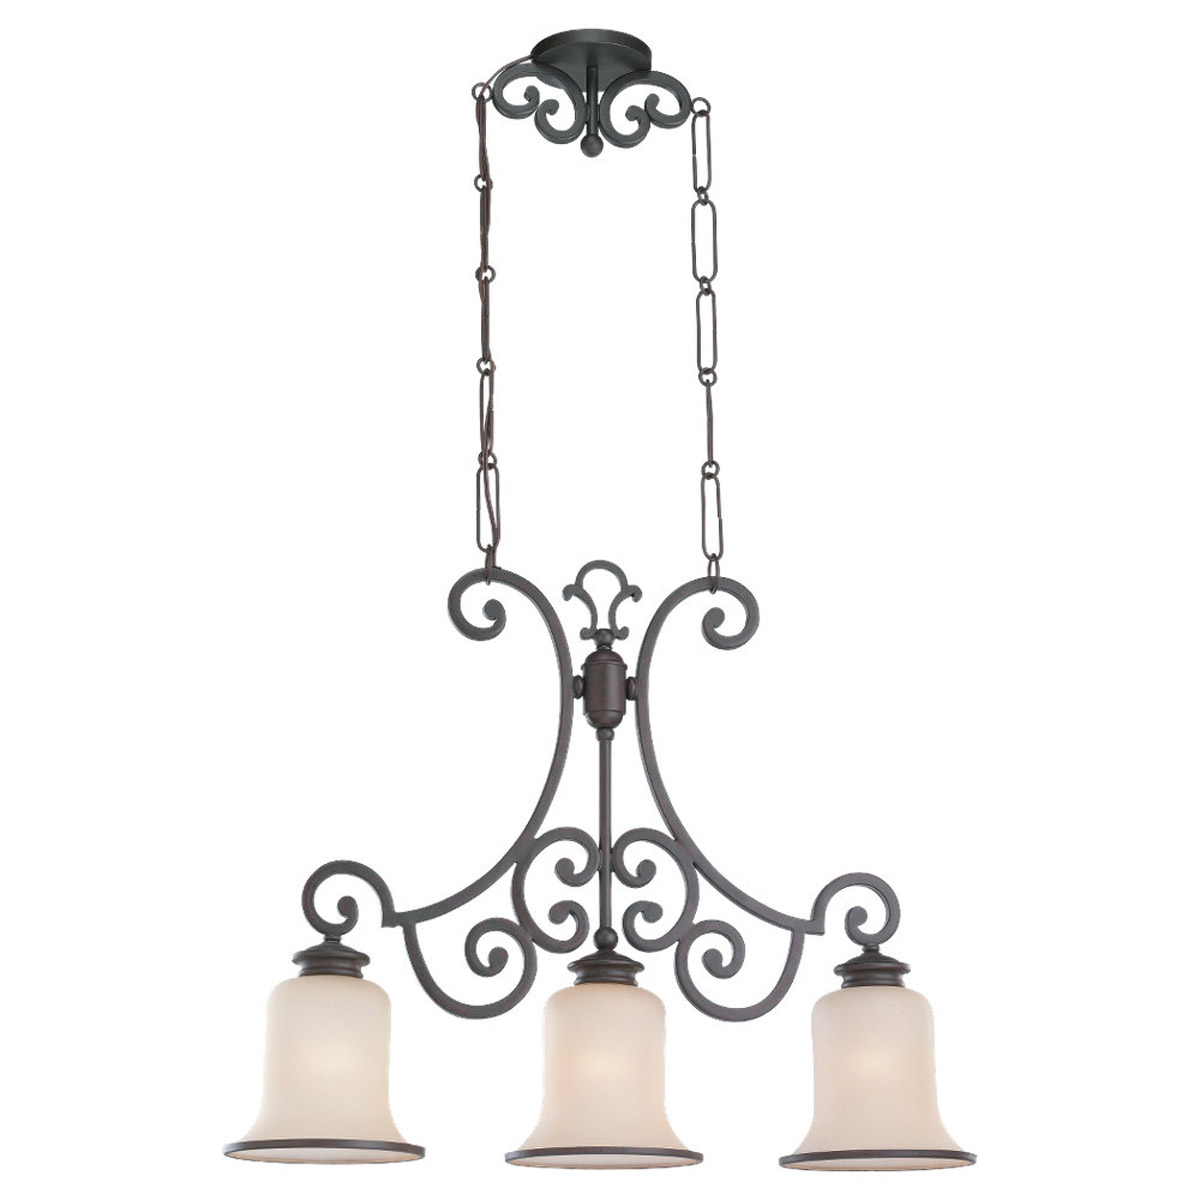 Sea Gull Lighting Acadia 3 Light Billiard Pendant in Misted Bronze 66145-814